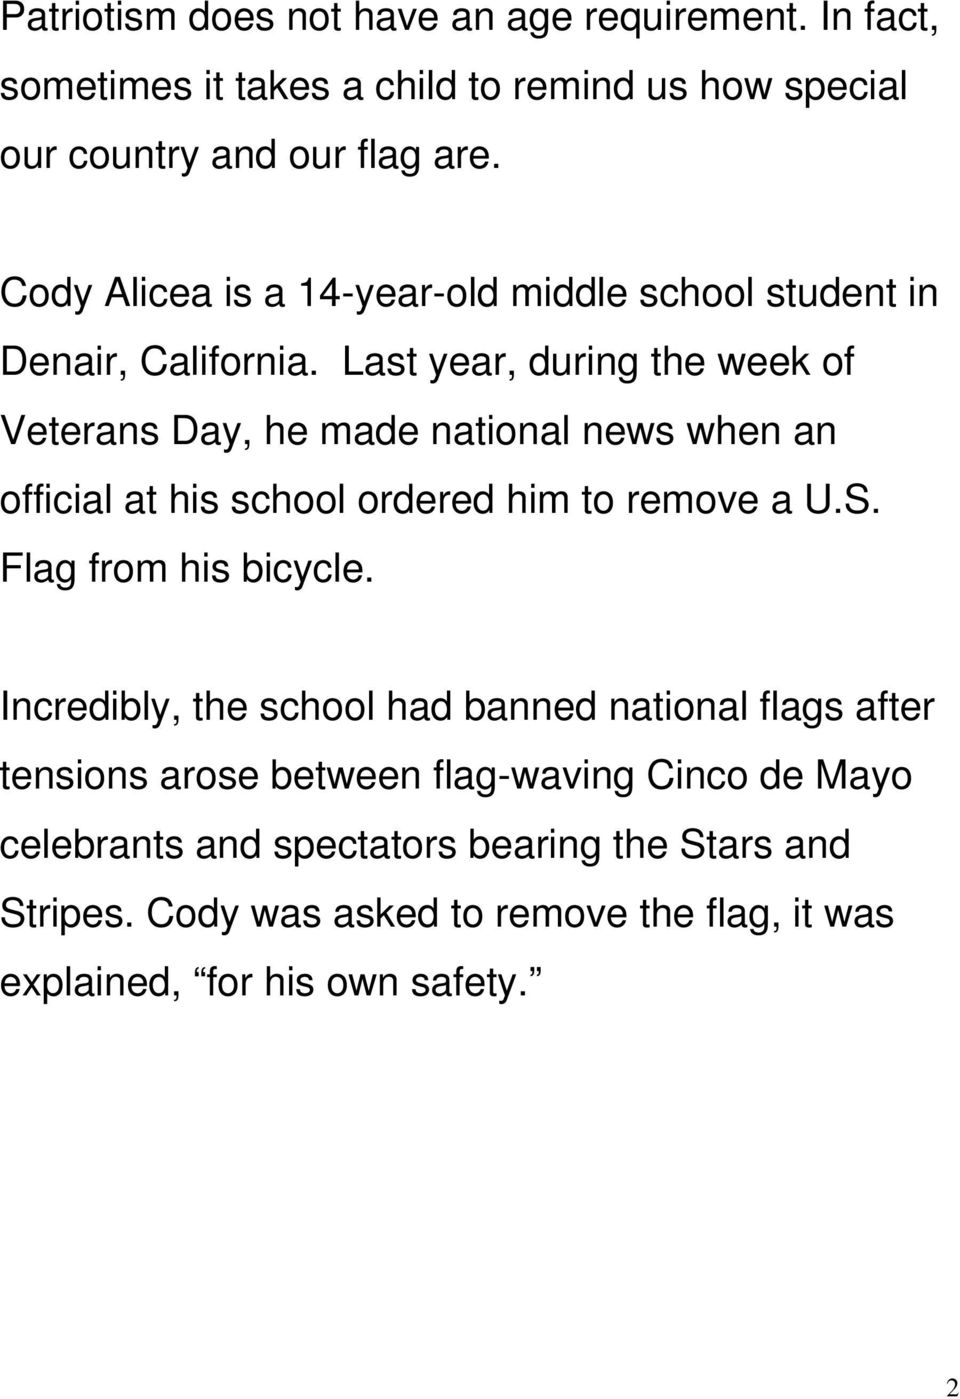 Last year, during the week of Veterans Day, he made national news when an official at his school ordered him to remove a U.S. Flag from his bicycle.